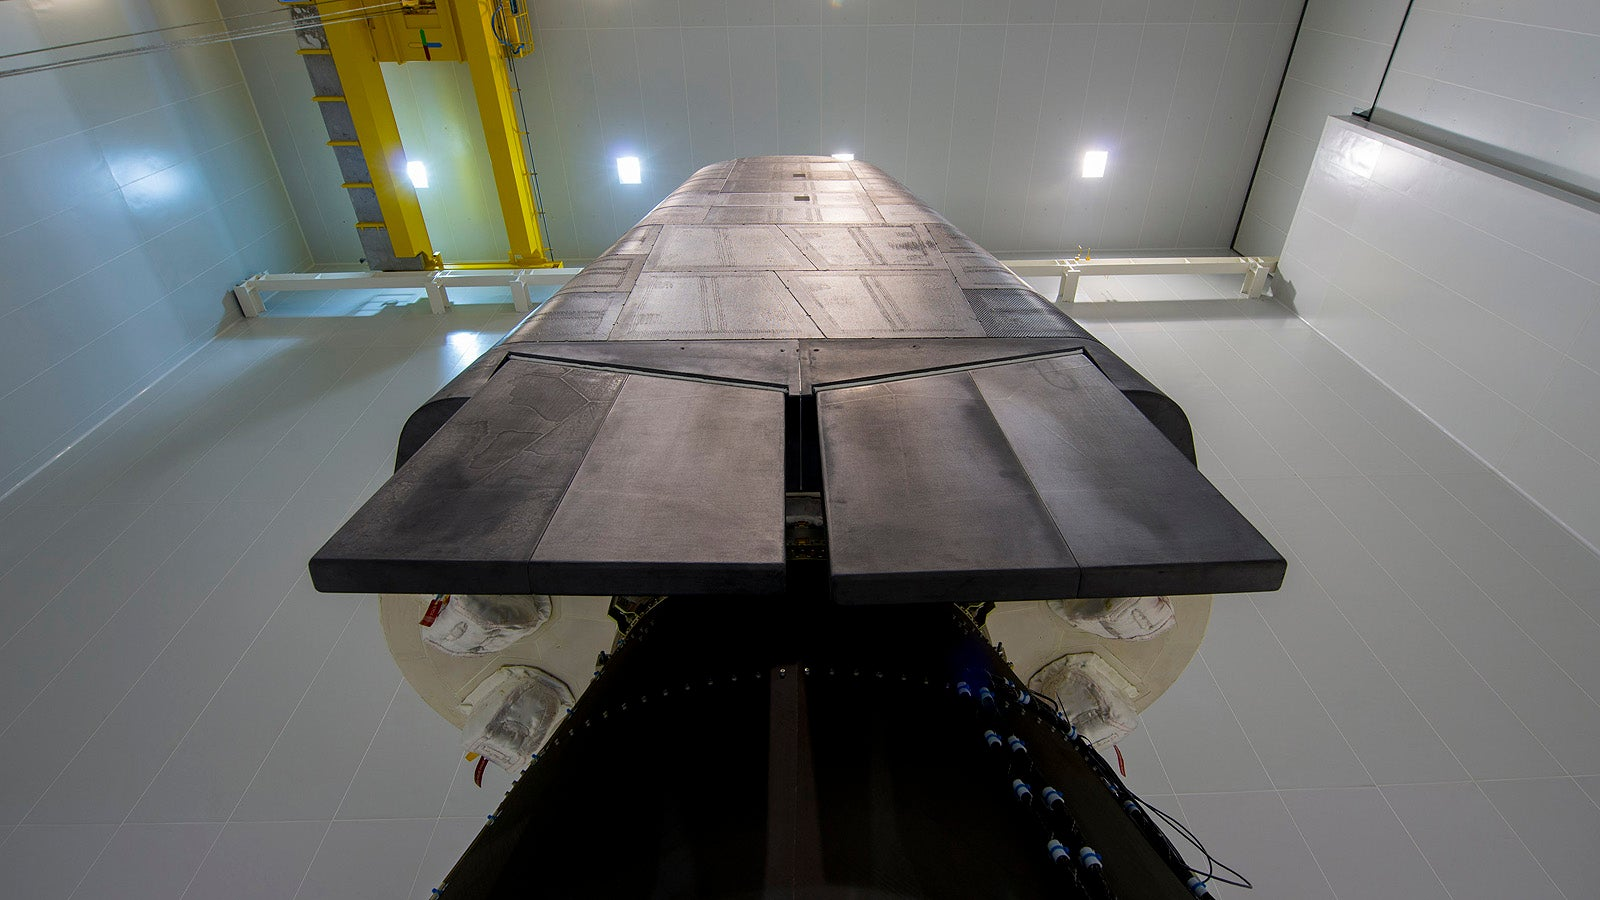 Monster Machines: This Gleaming Monolith May Spawn The Next Space Shuttle